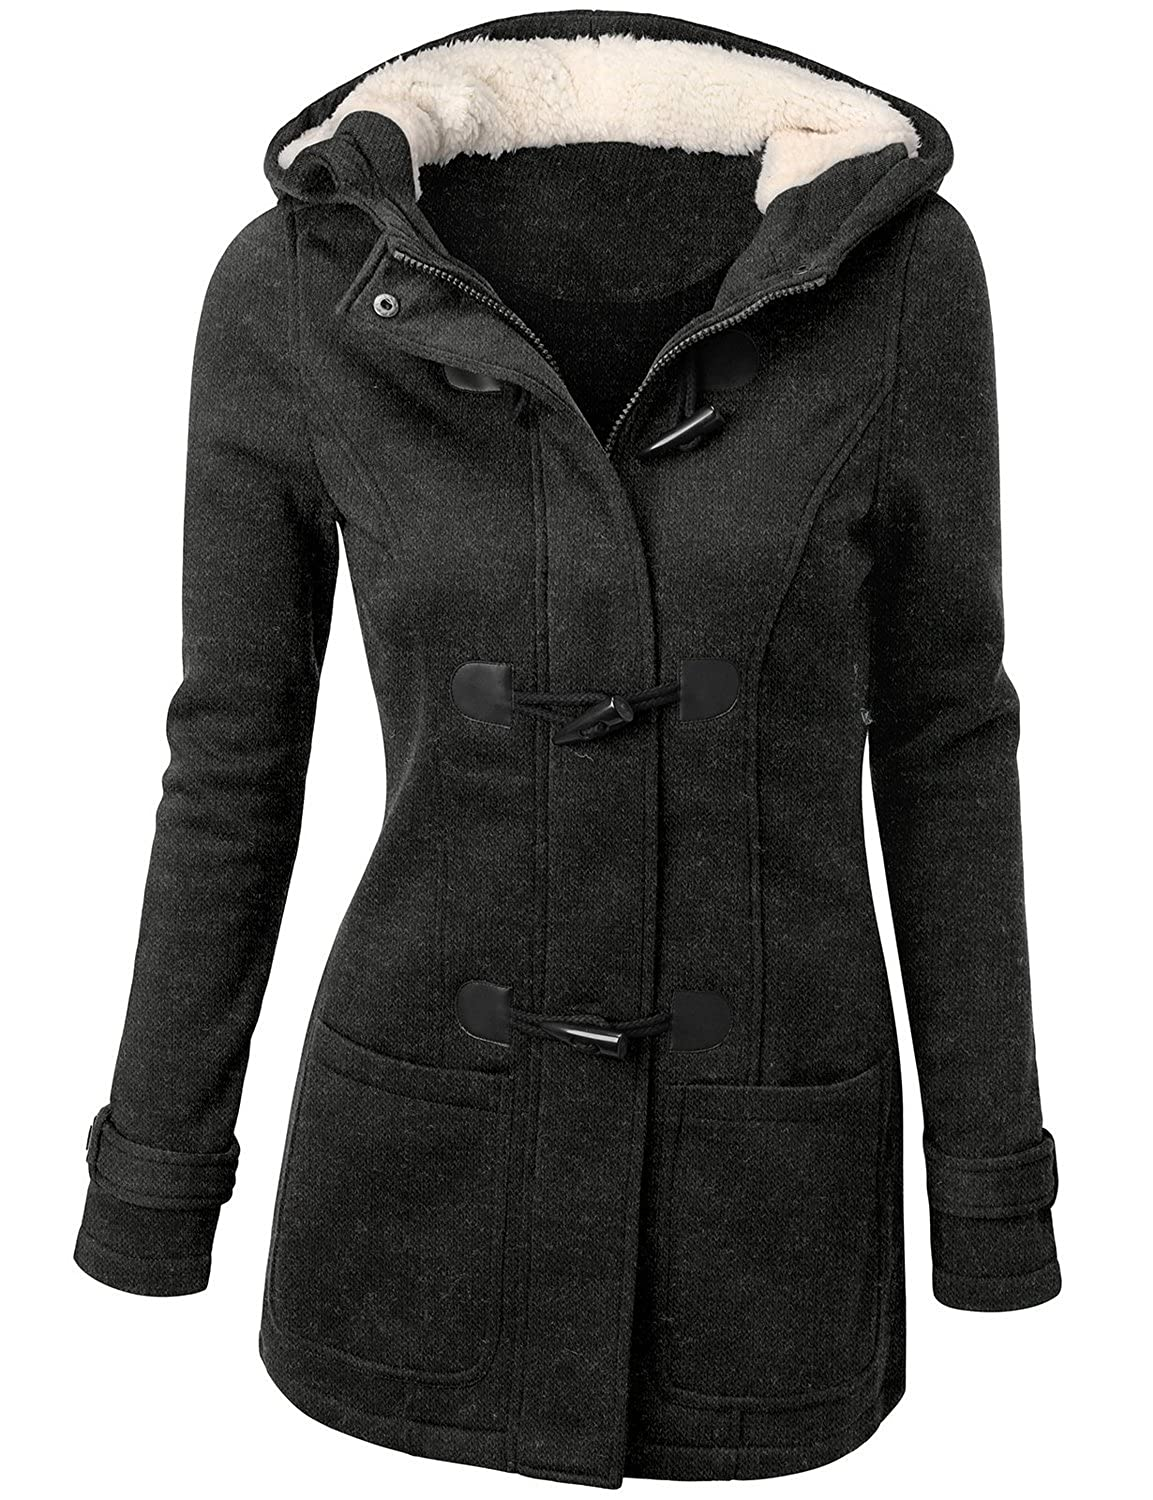 Womens Wool Blended Classic Pea Coat Jacket